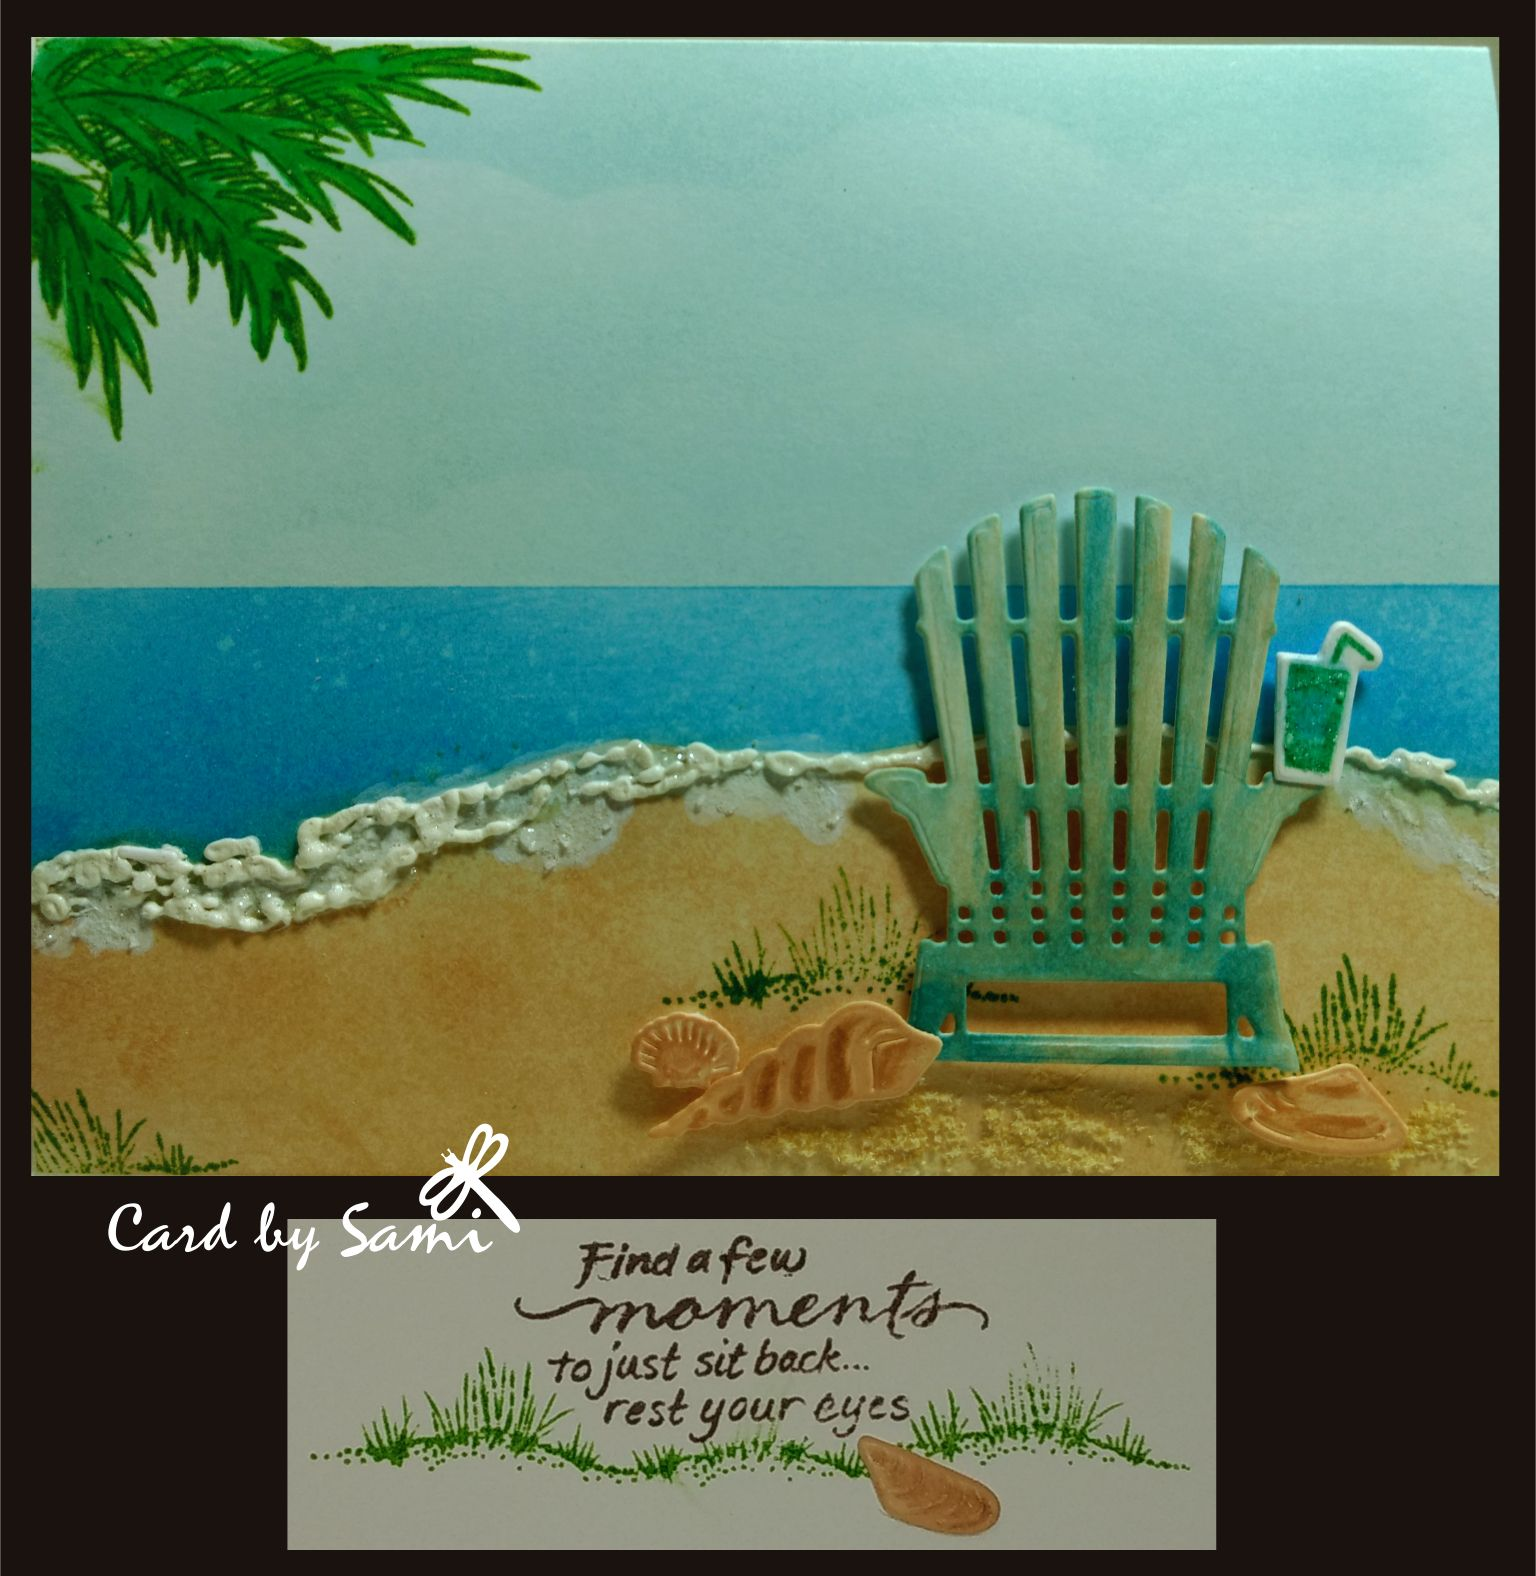 Relax Beach Card Distress Inks Used For All Coloring Puffy Wave Edge Is Liquid Lique Chair Stampin Up Seasonal Layers